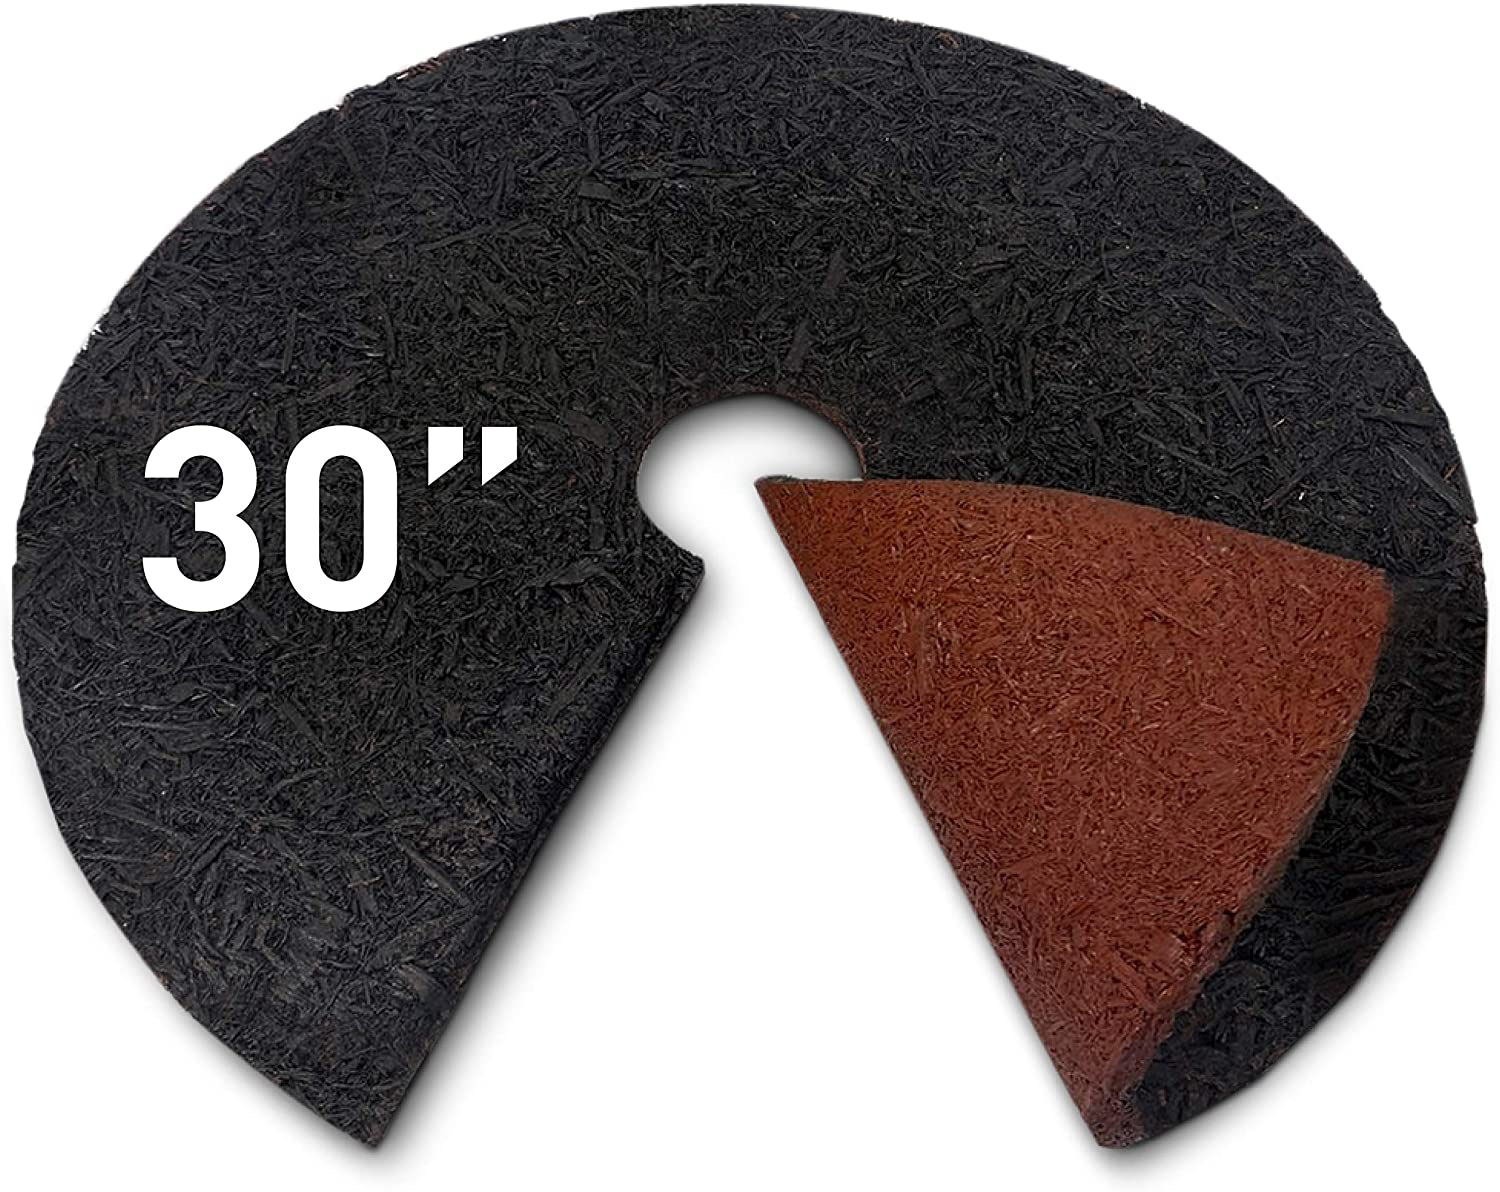 Denver Mall EasyGo Product Double Sided Mulch Natural Ring RubberRing30 Tree Max 82% OFF